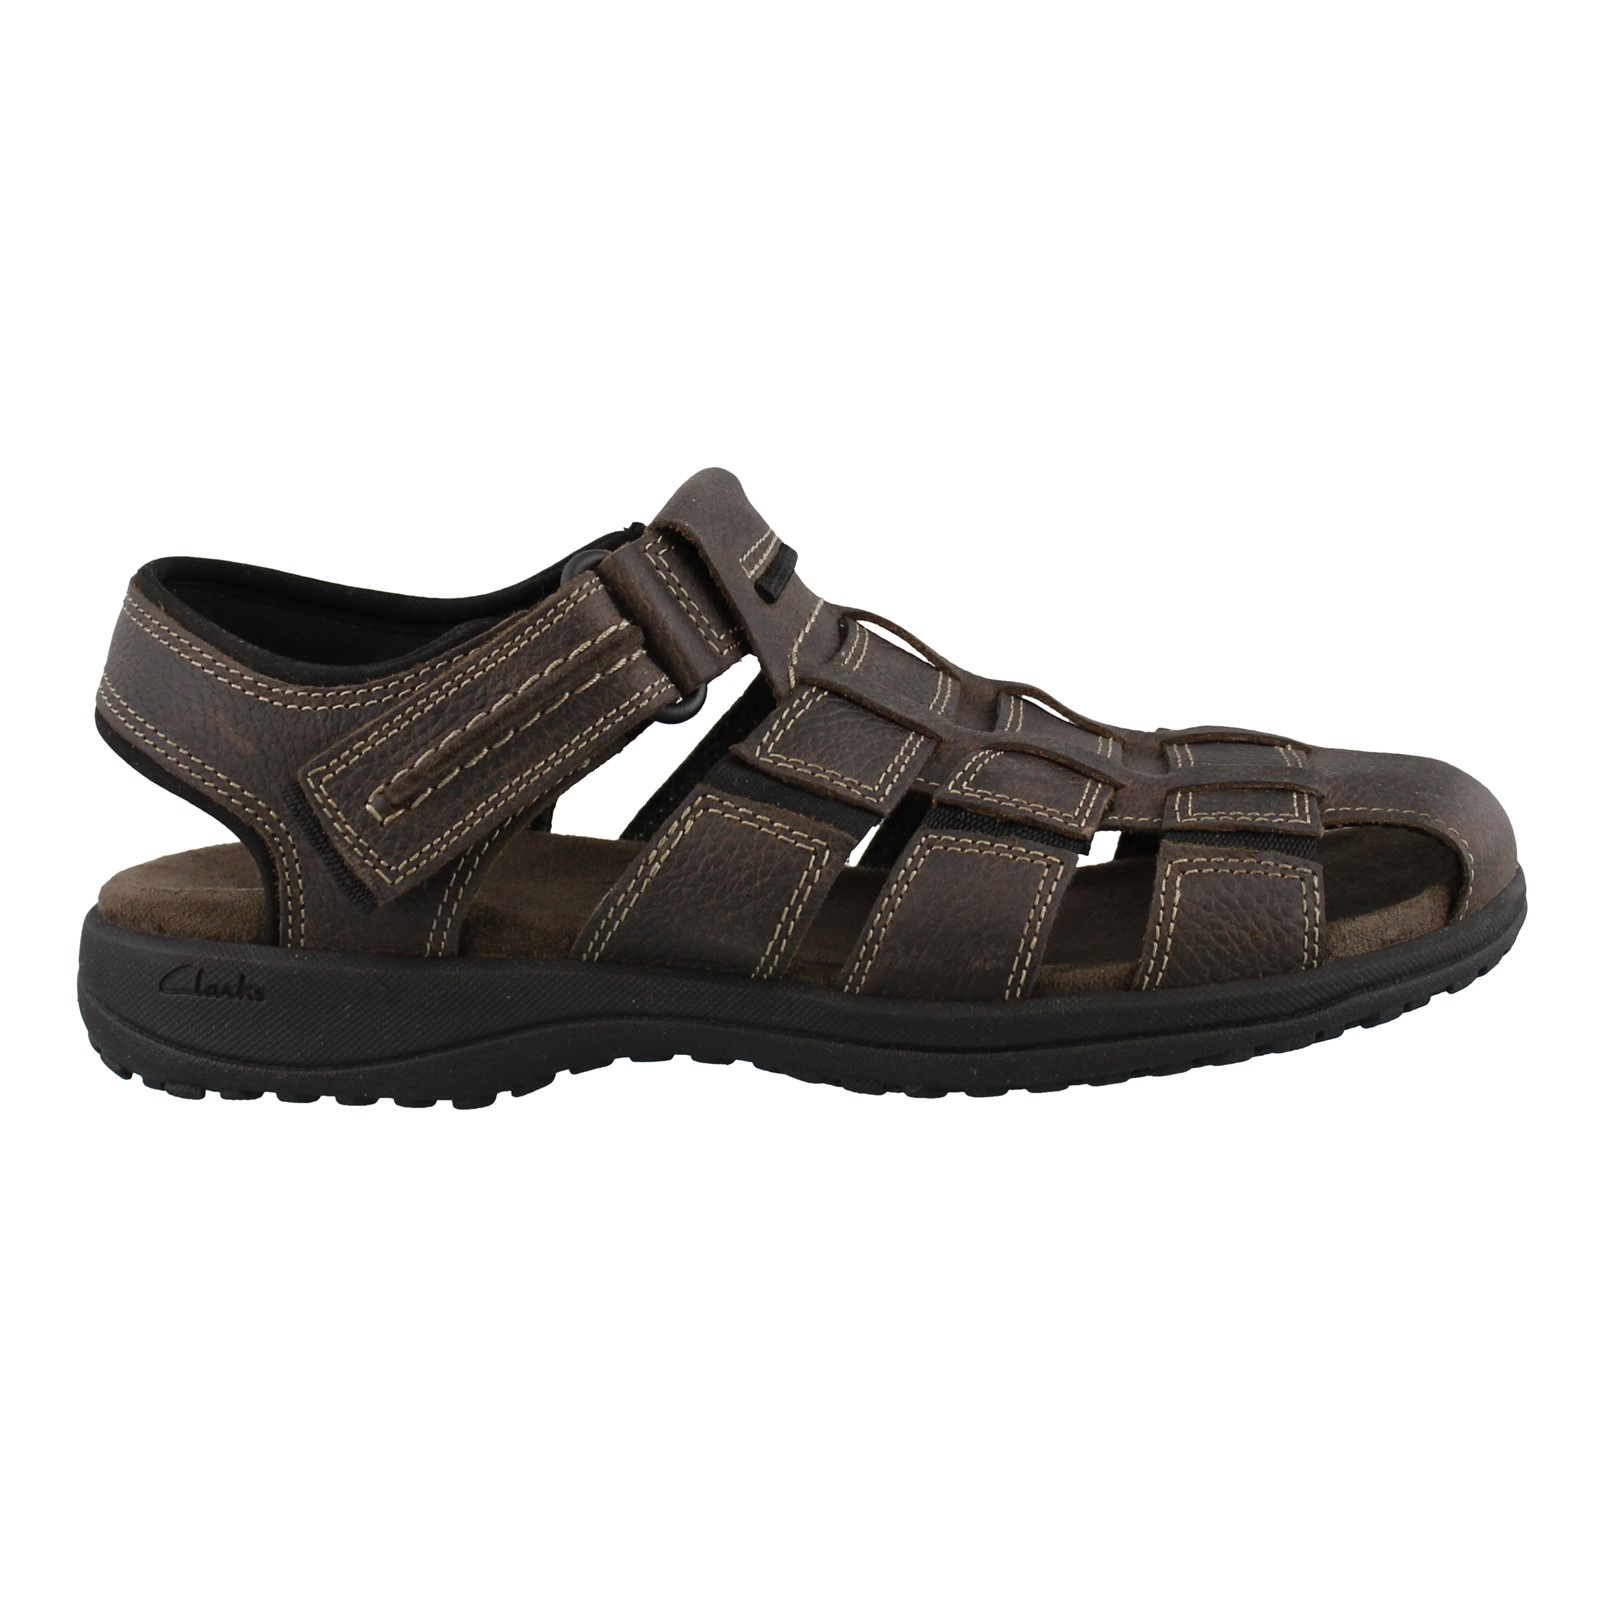 Men's Clarks, Jensen Fisherman Sandals